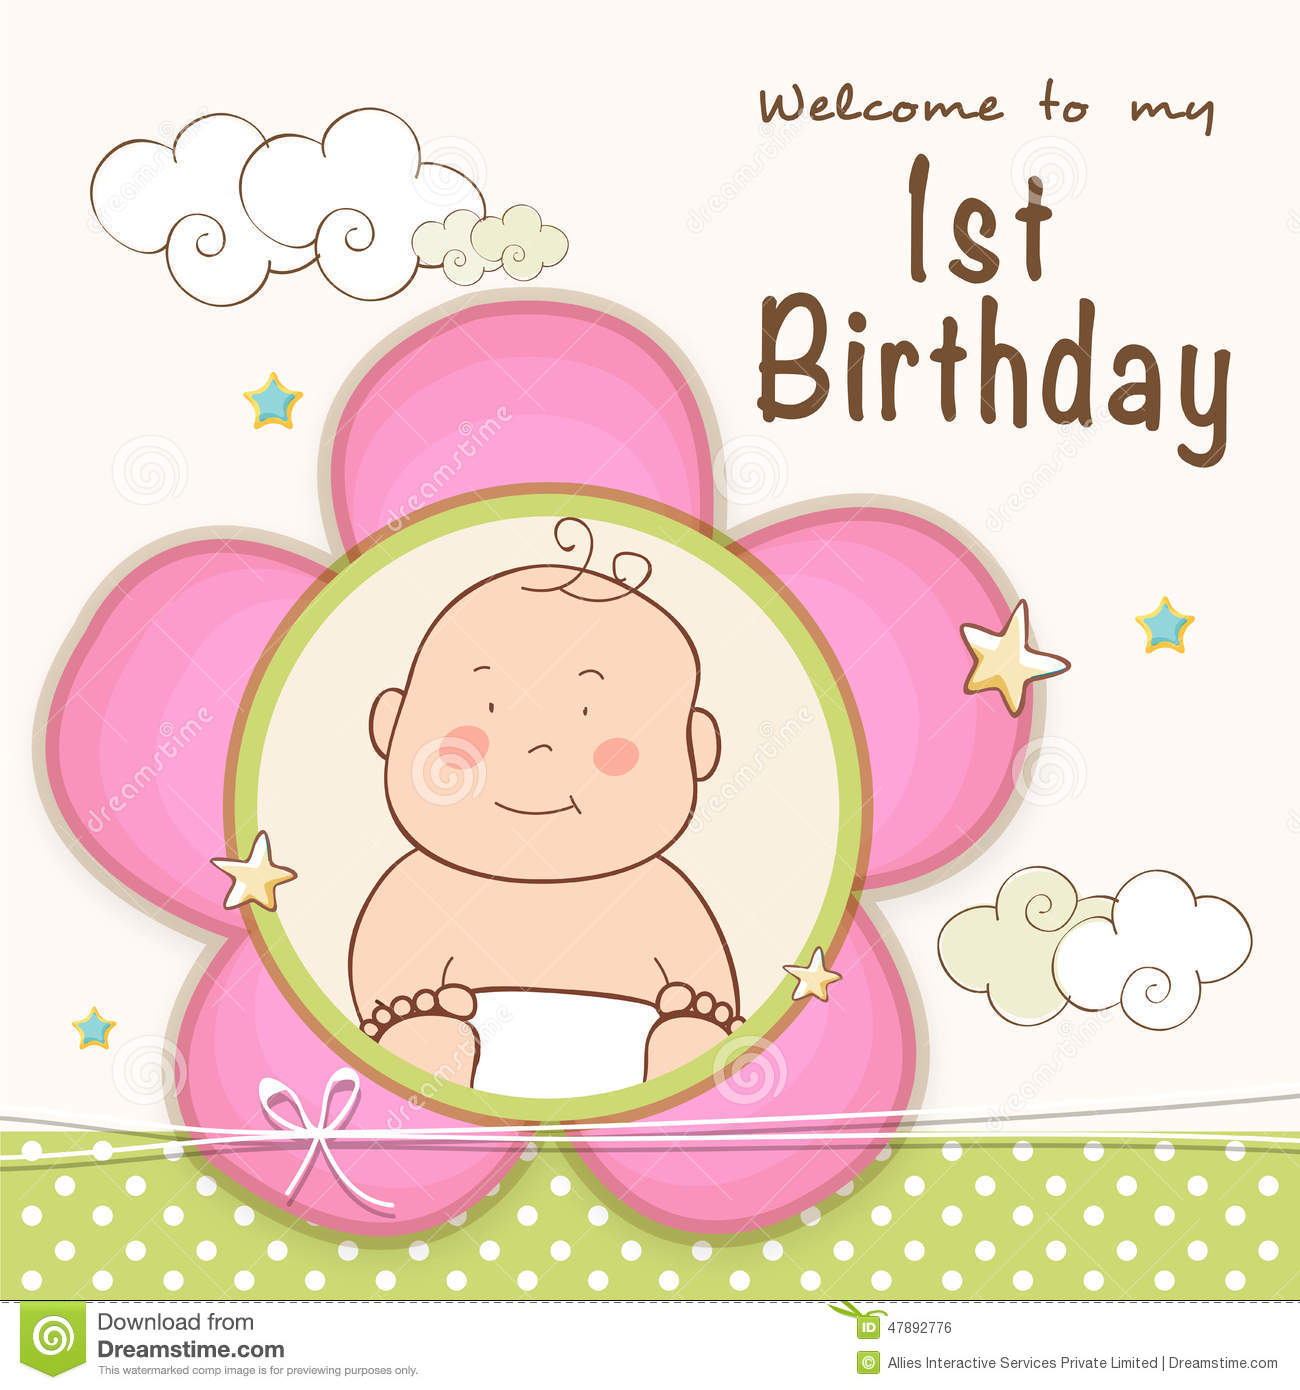 1st Birthday Invitation Card Design Illustration Image – Birthday Invitations Cards Designs